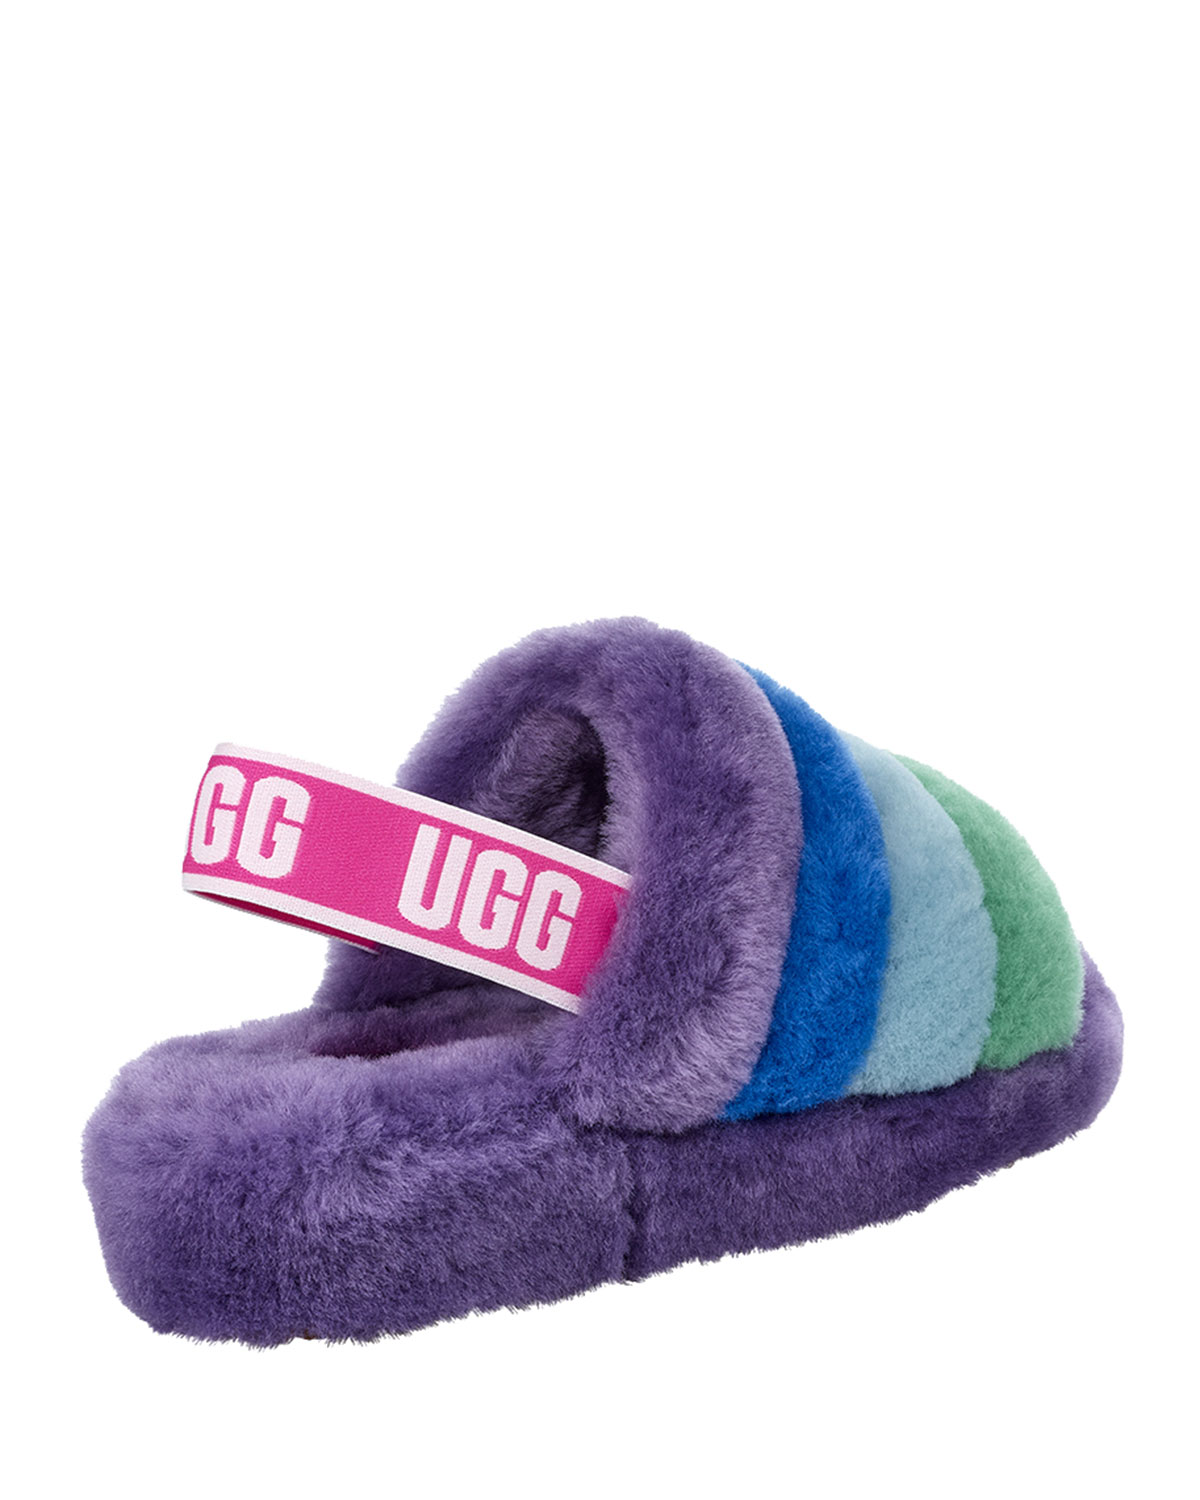 0ba96608ca2 x Born This Way Foundation Pride Fluff Yeah Rainbow Shearling Sandal  Slippers